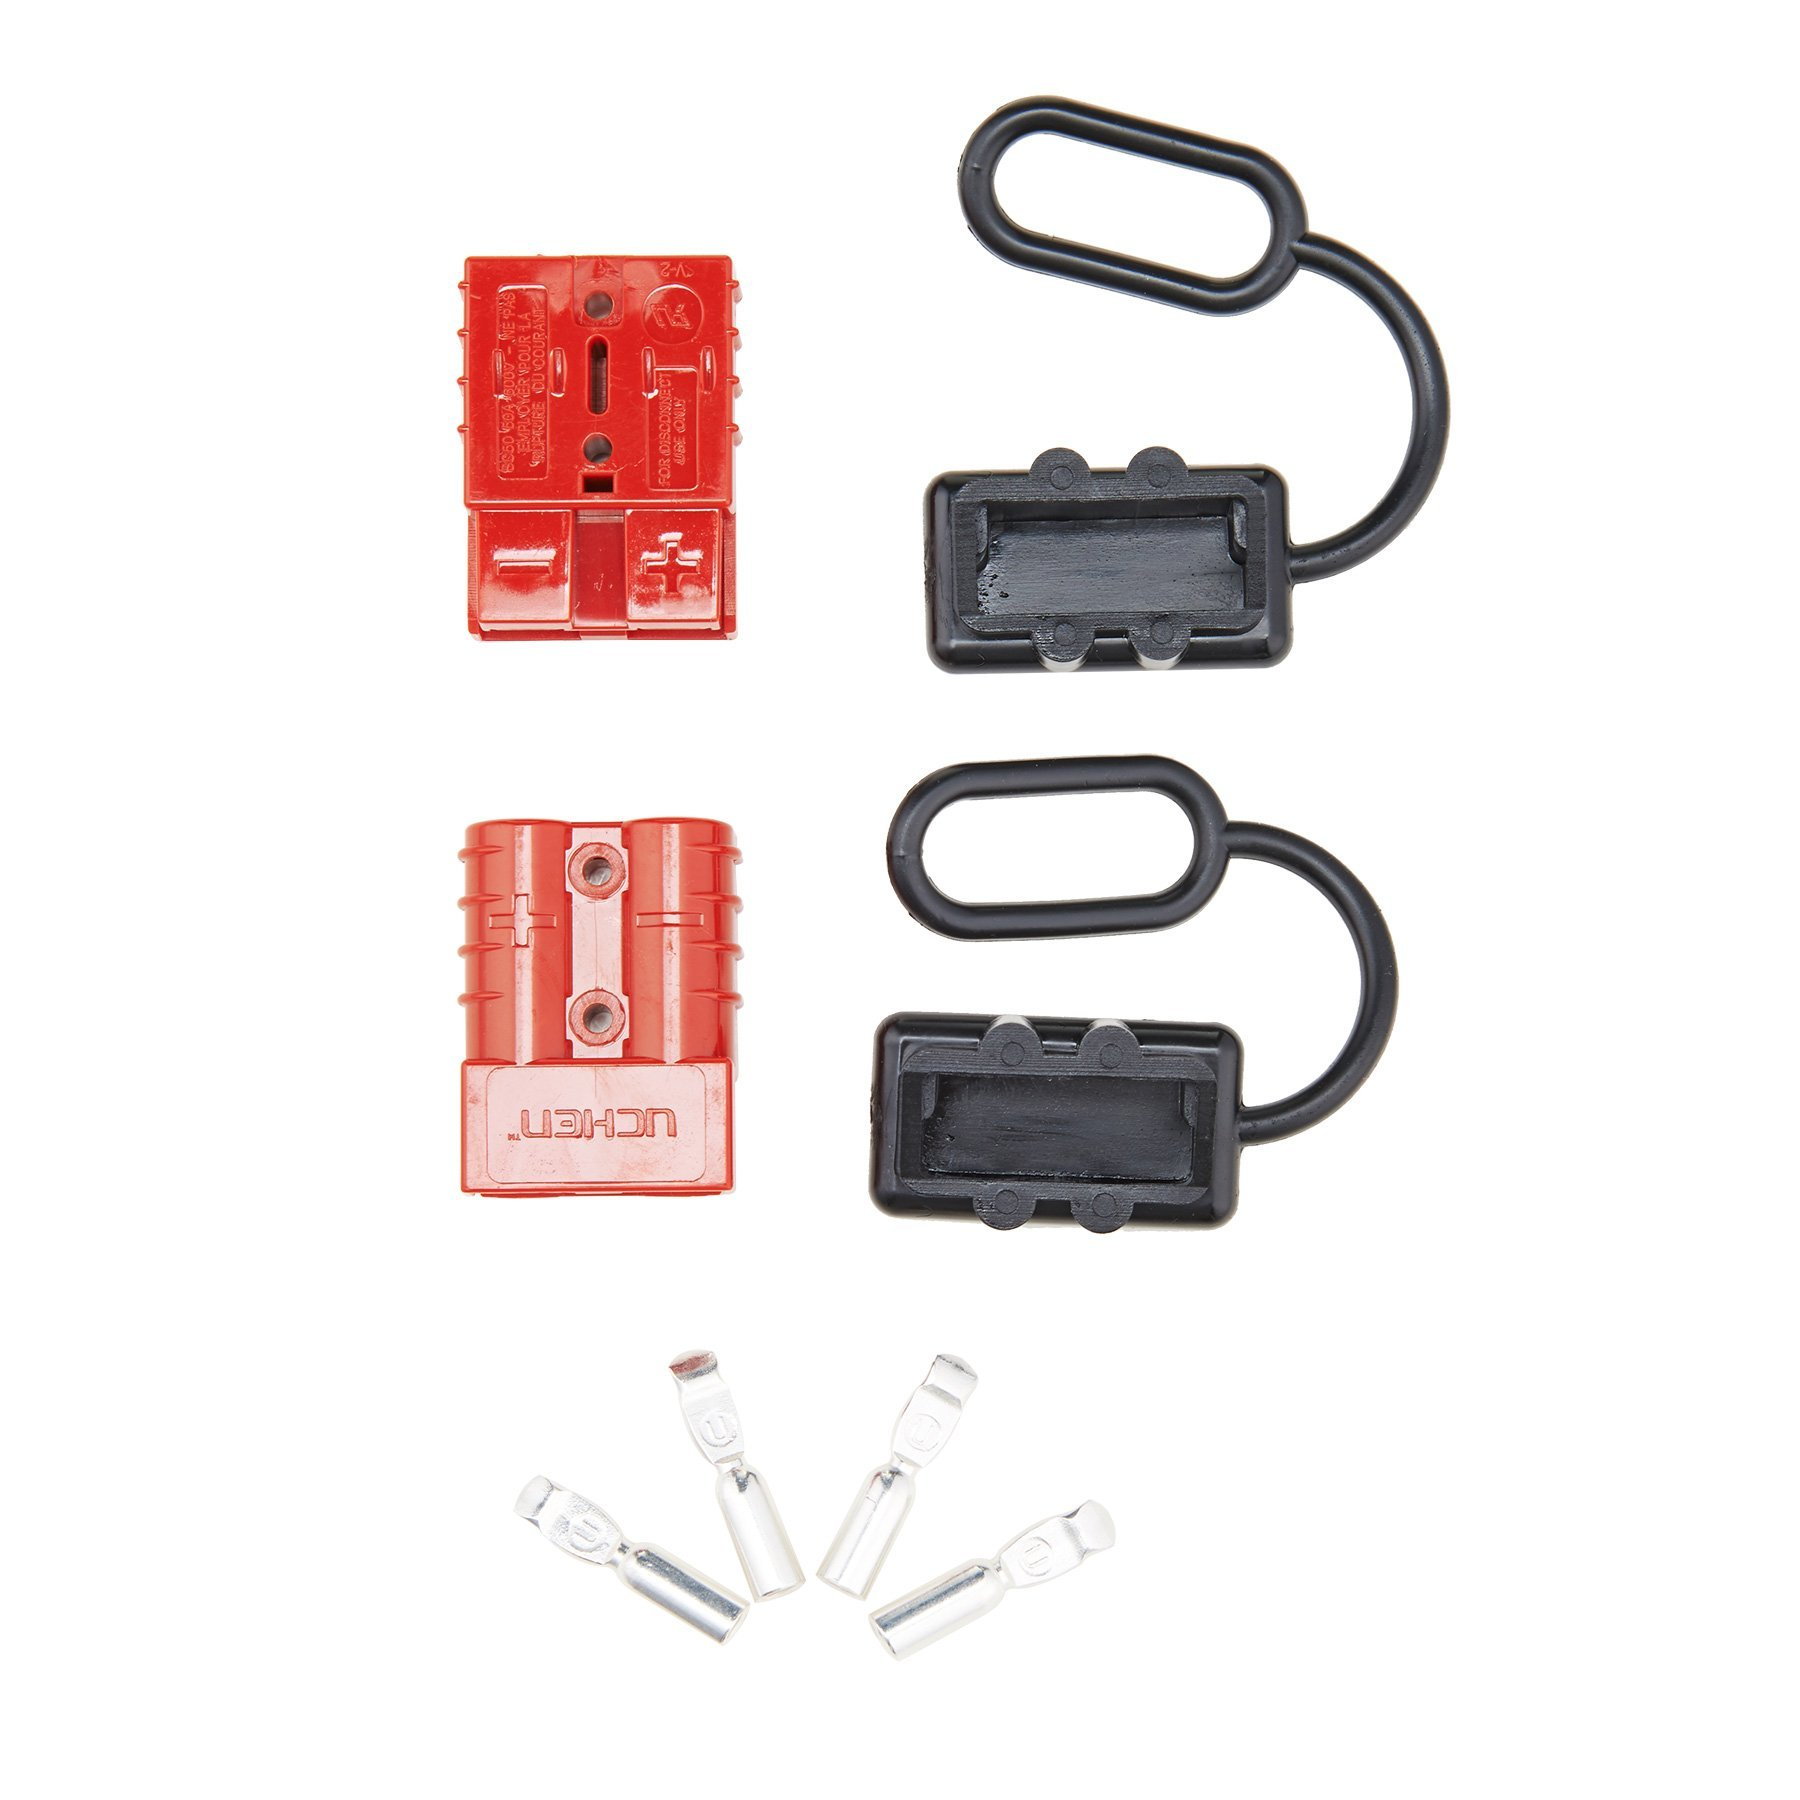 Orionmotortech 6 8 Gauge Battery Quick Connect Disconnect Wire Trailer Wiring Harness Plug Kit For Recovery Winch Or 12 36v Dc 50a Omt Qcw 10181